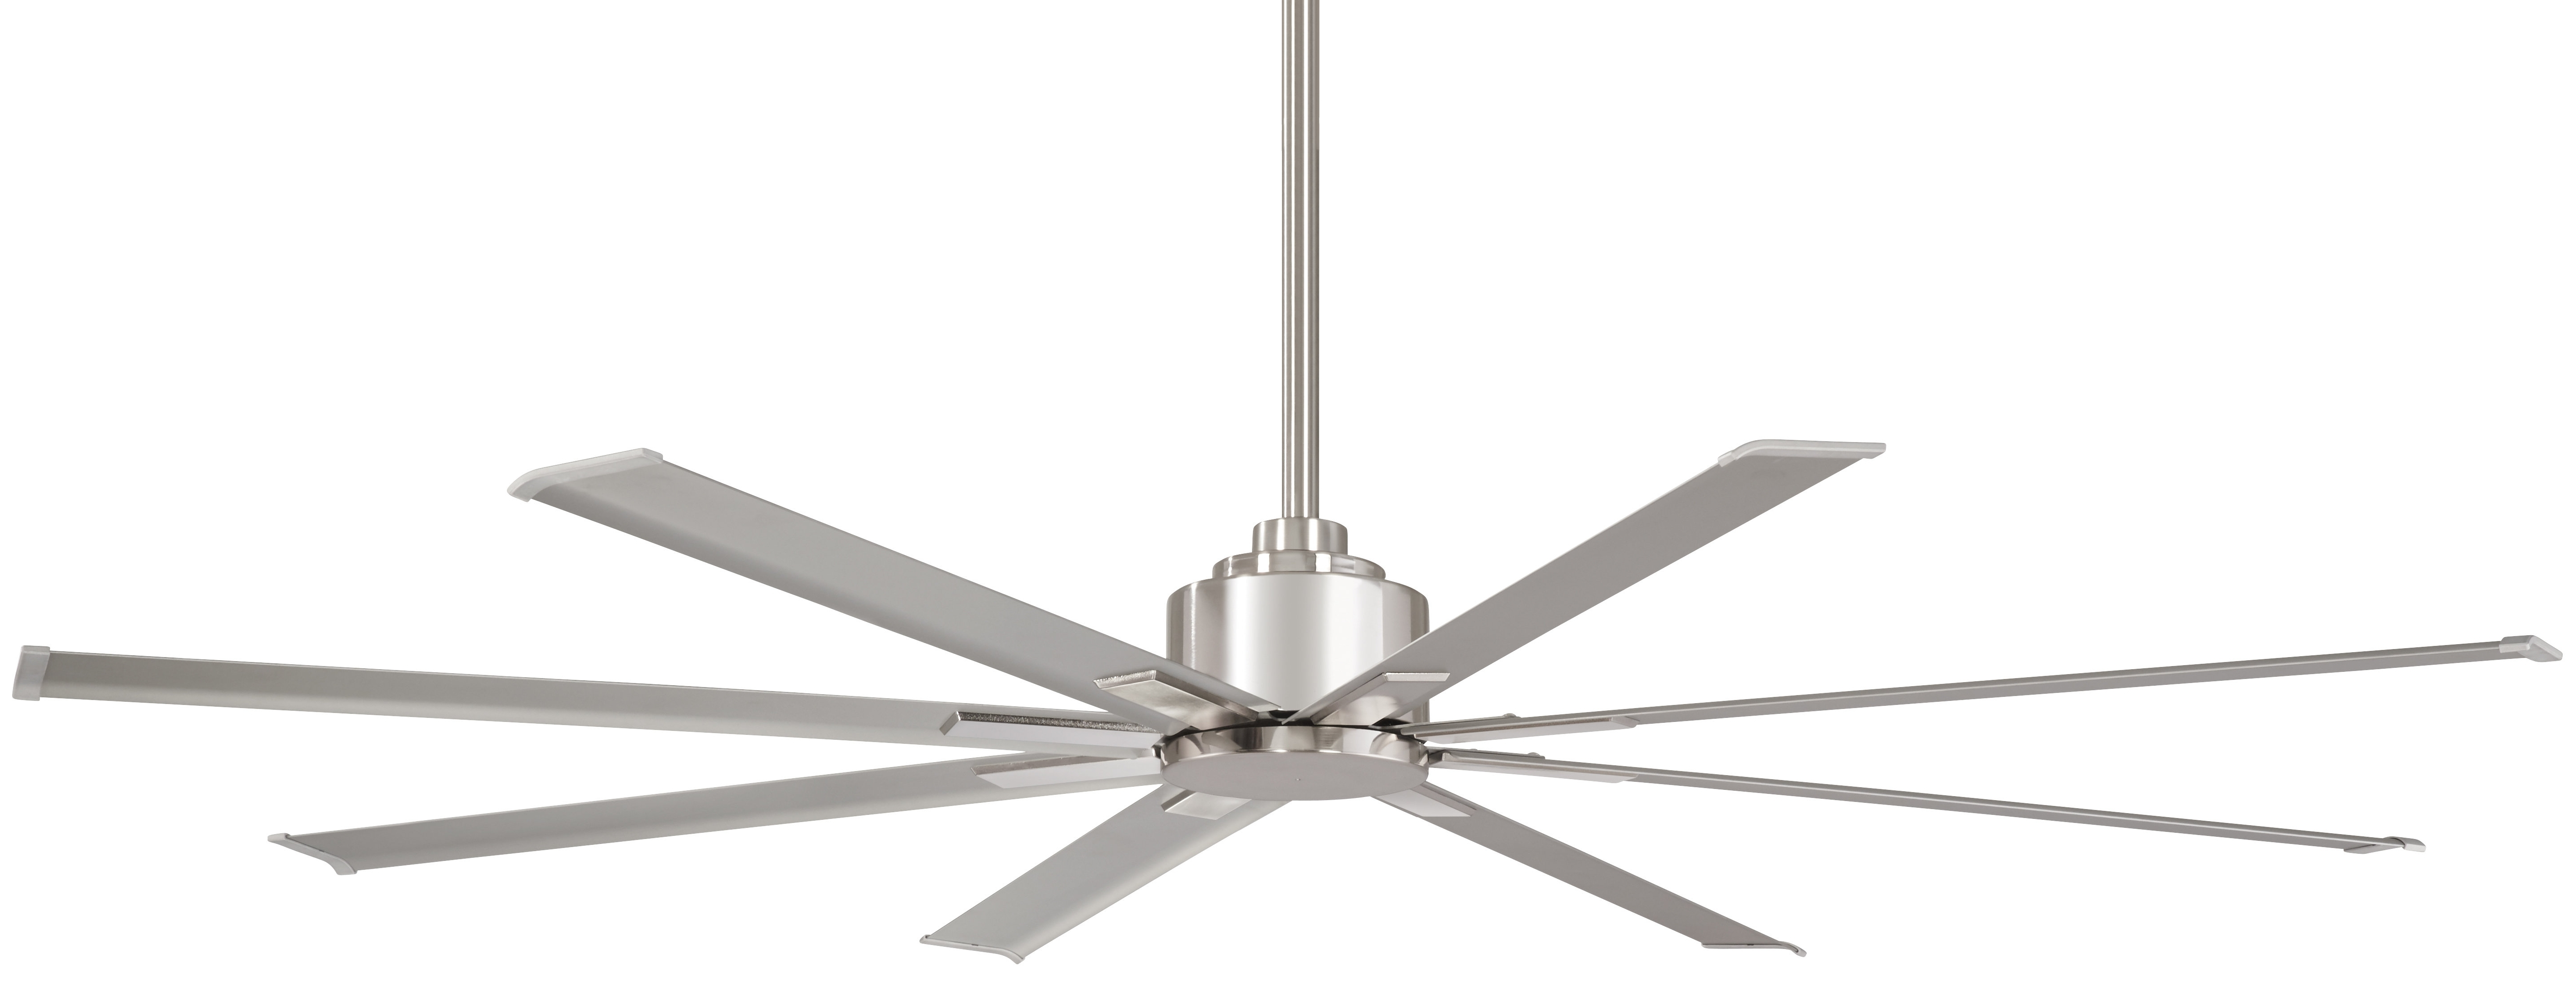 """Trendy Minka Aire 65"""" Xtreme 8 Blade Outdoor Ceiling Fan With Remote Inside Metal Outdoor Ceiling Fans With Light (View 15 of 20)"""